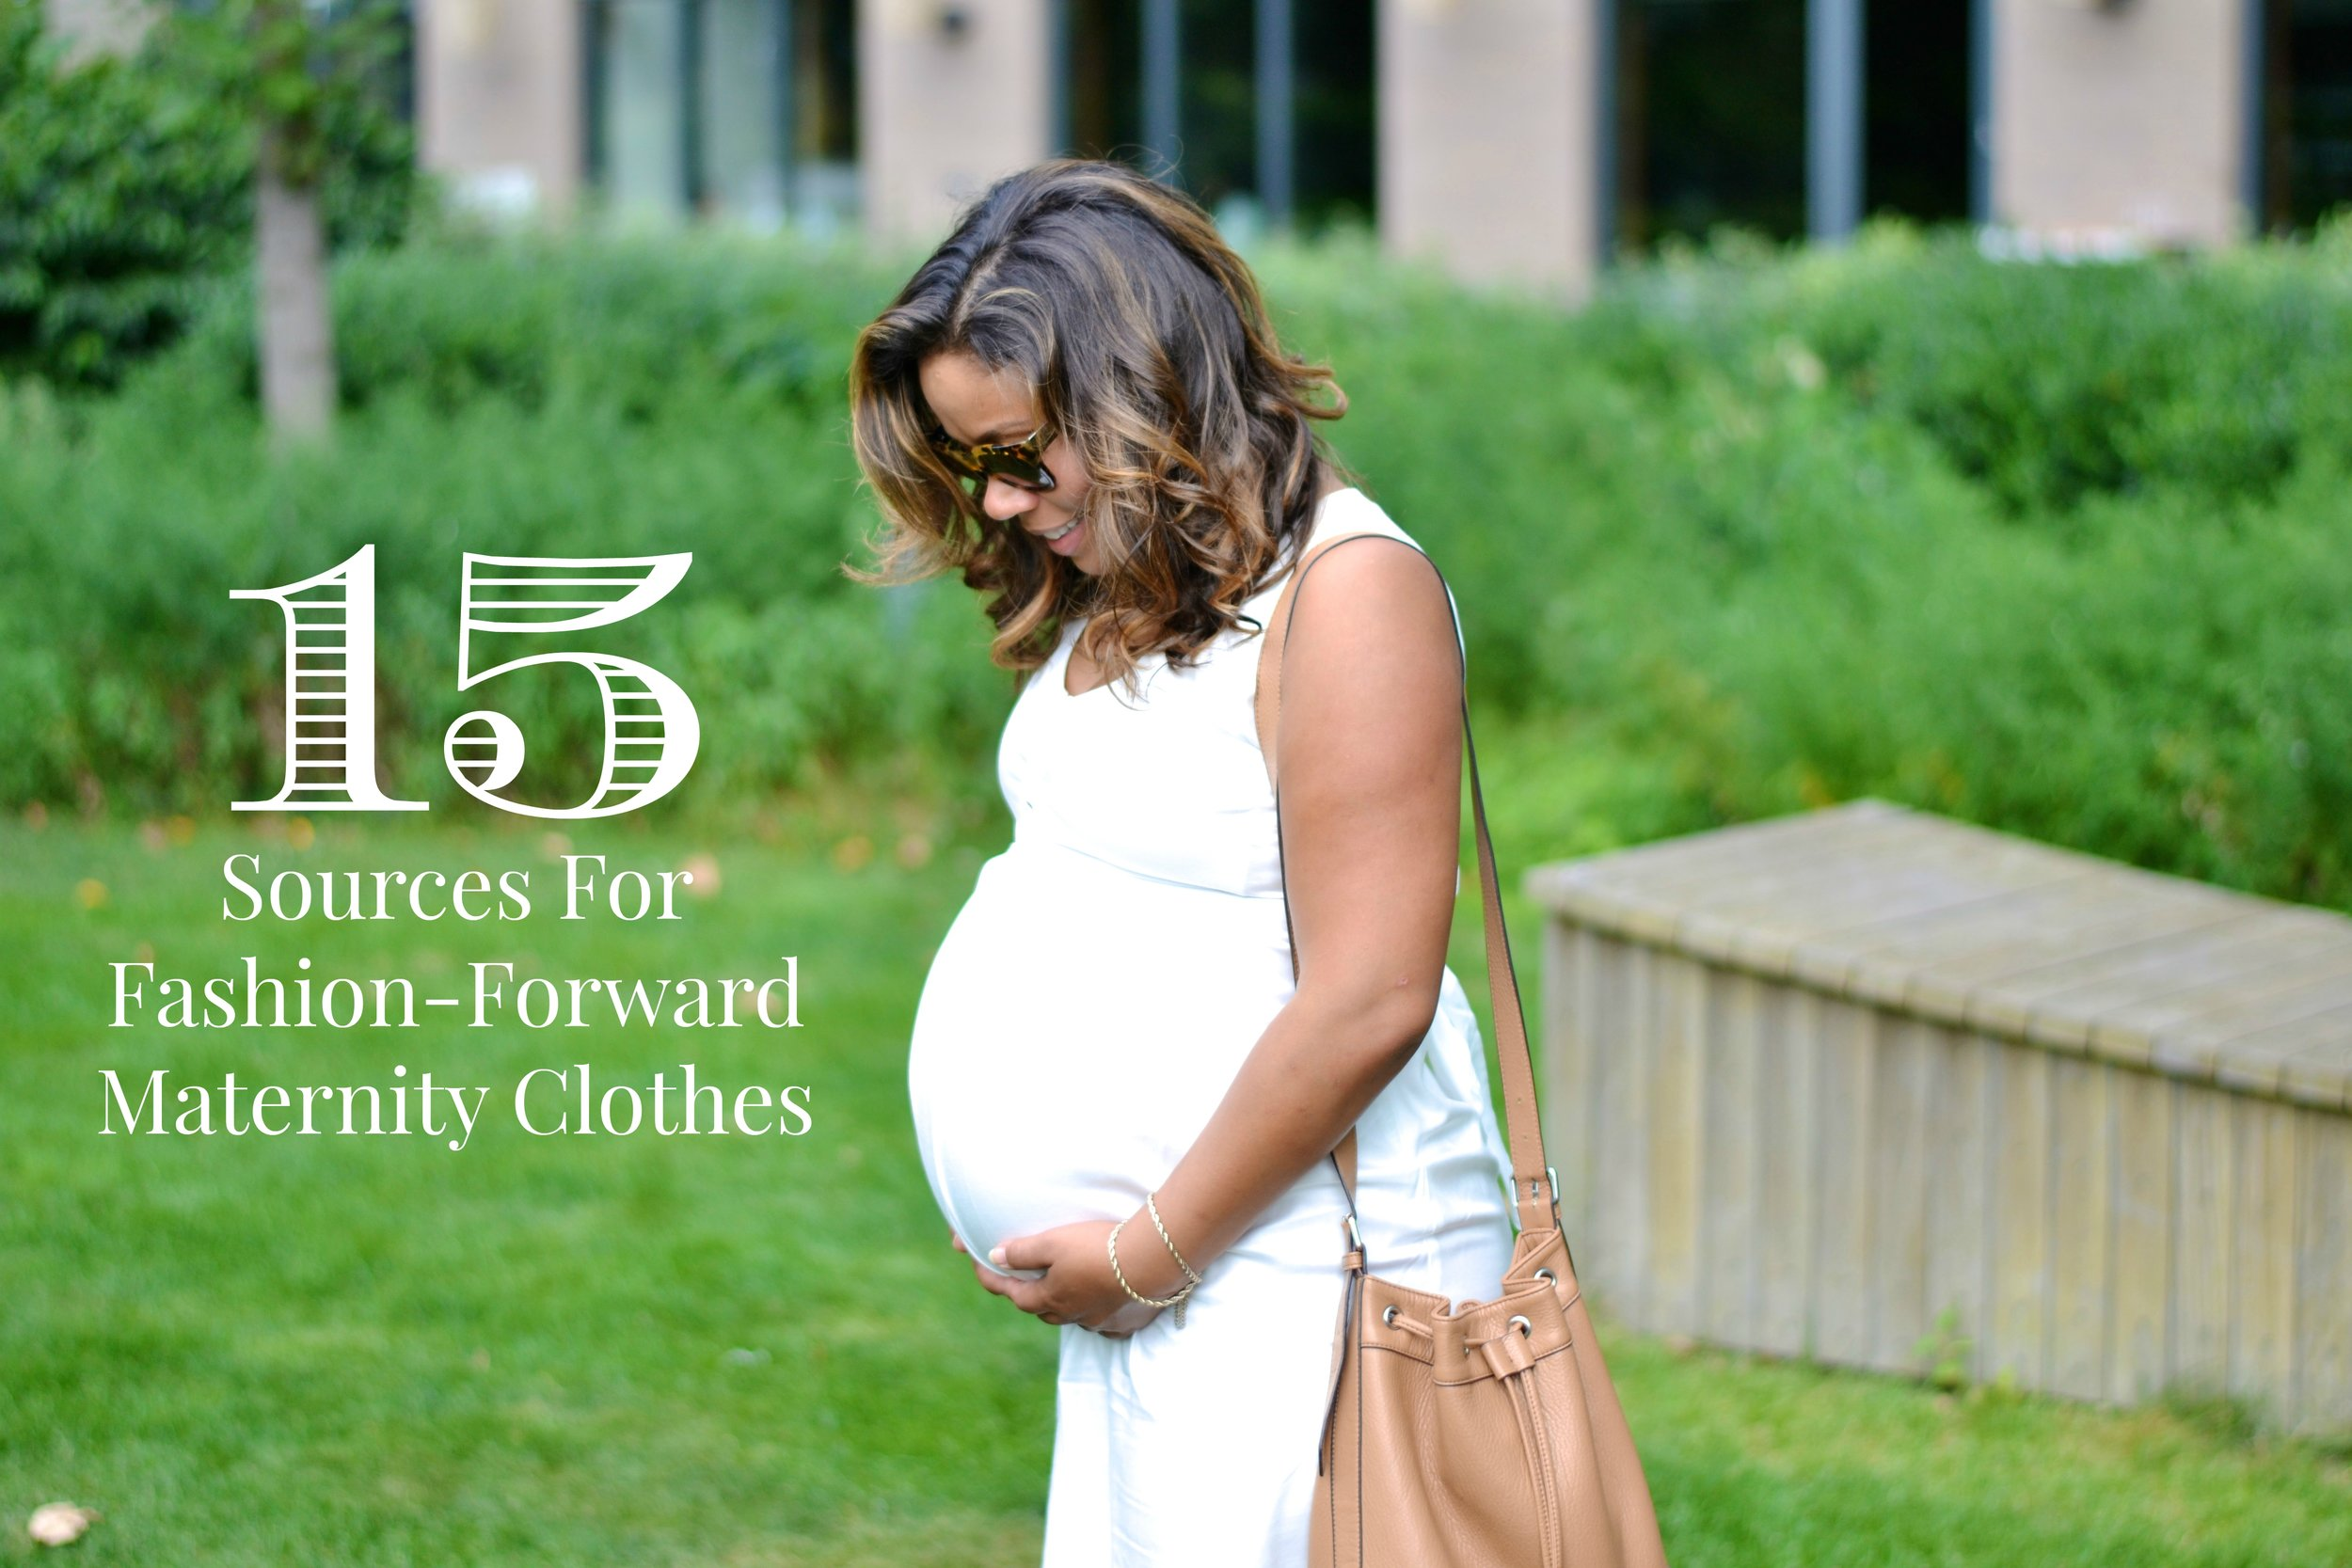 DSC_001515-Sources-For-Fashion-Forward-Maternity-Clothes.jpg